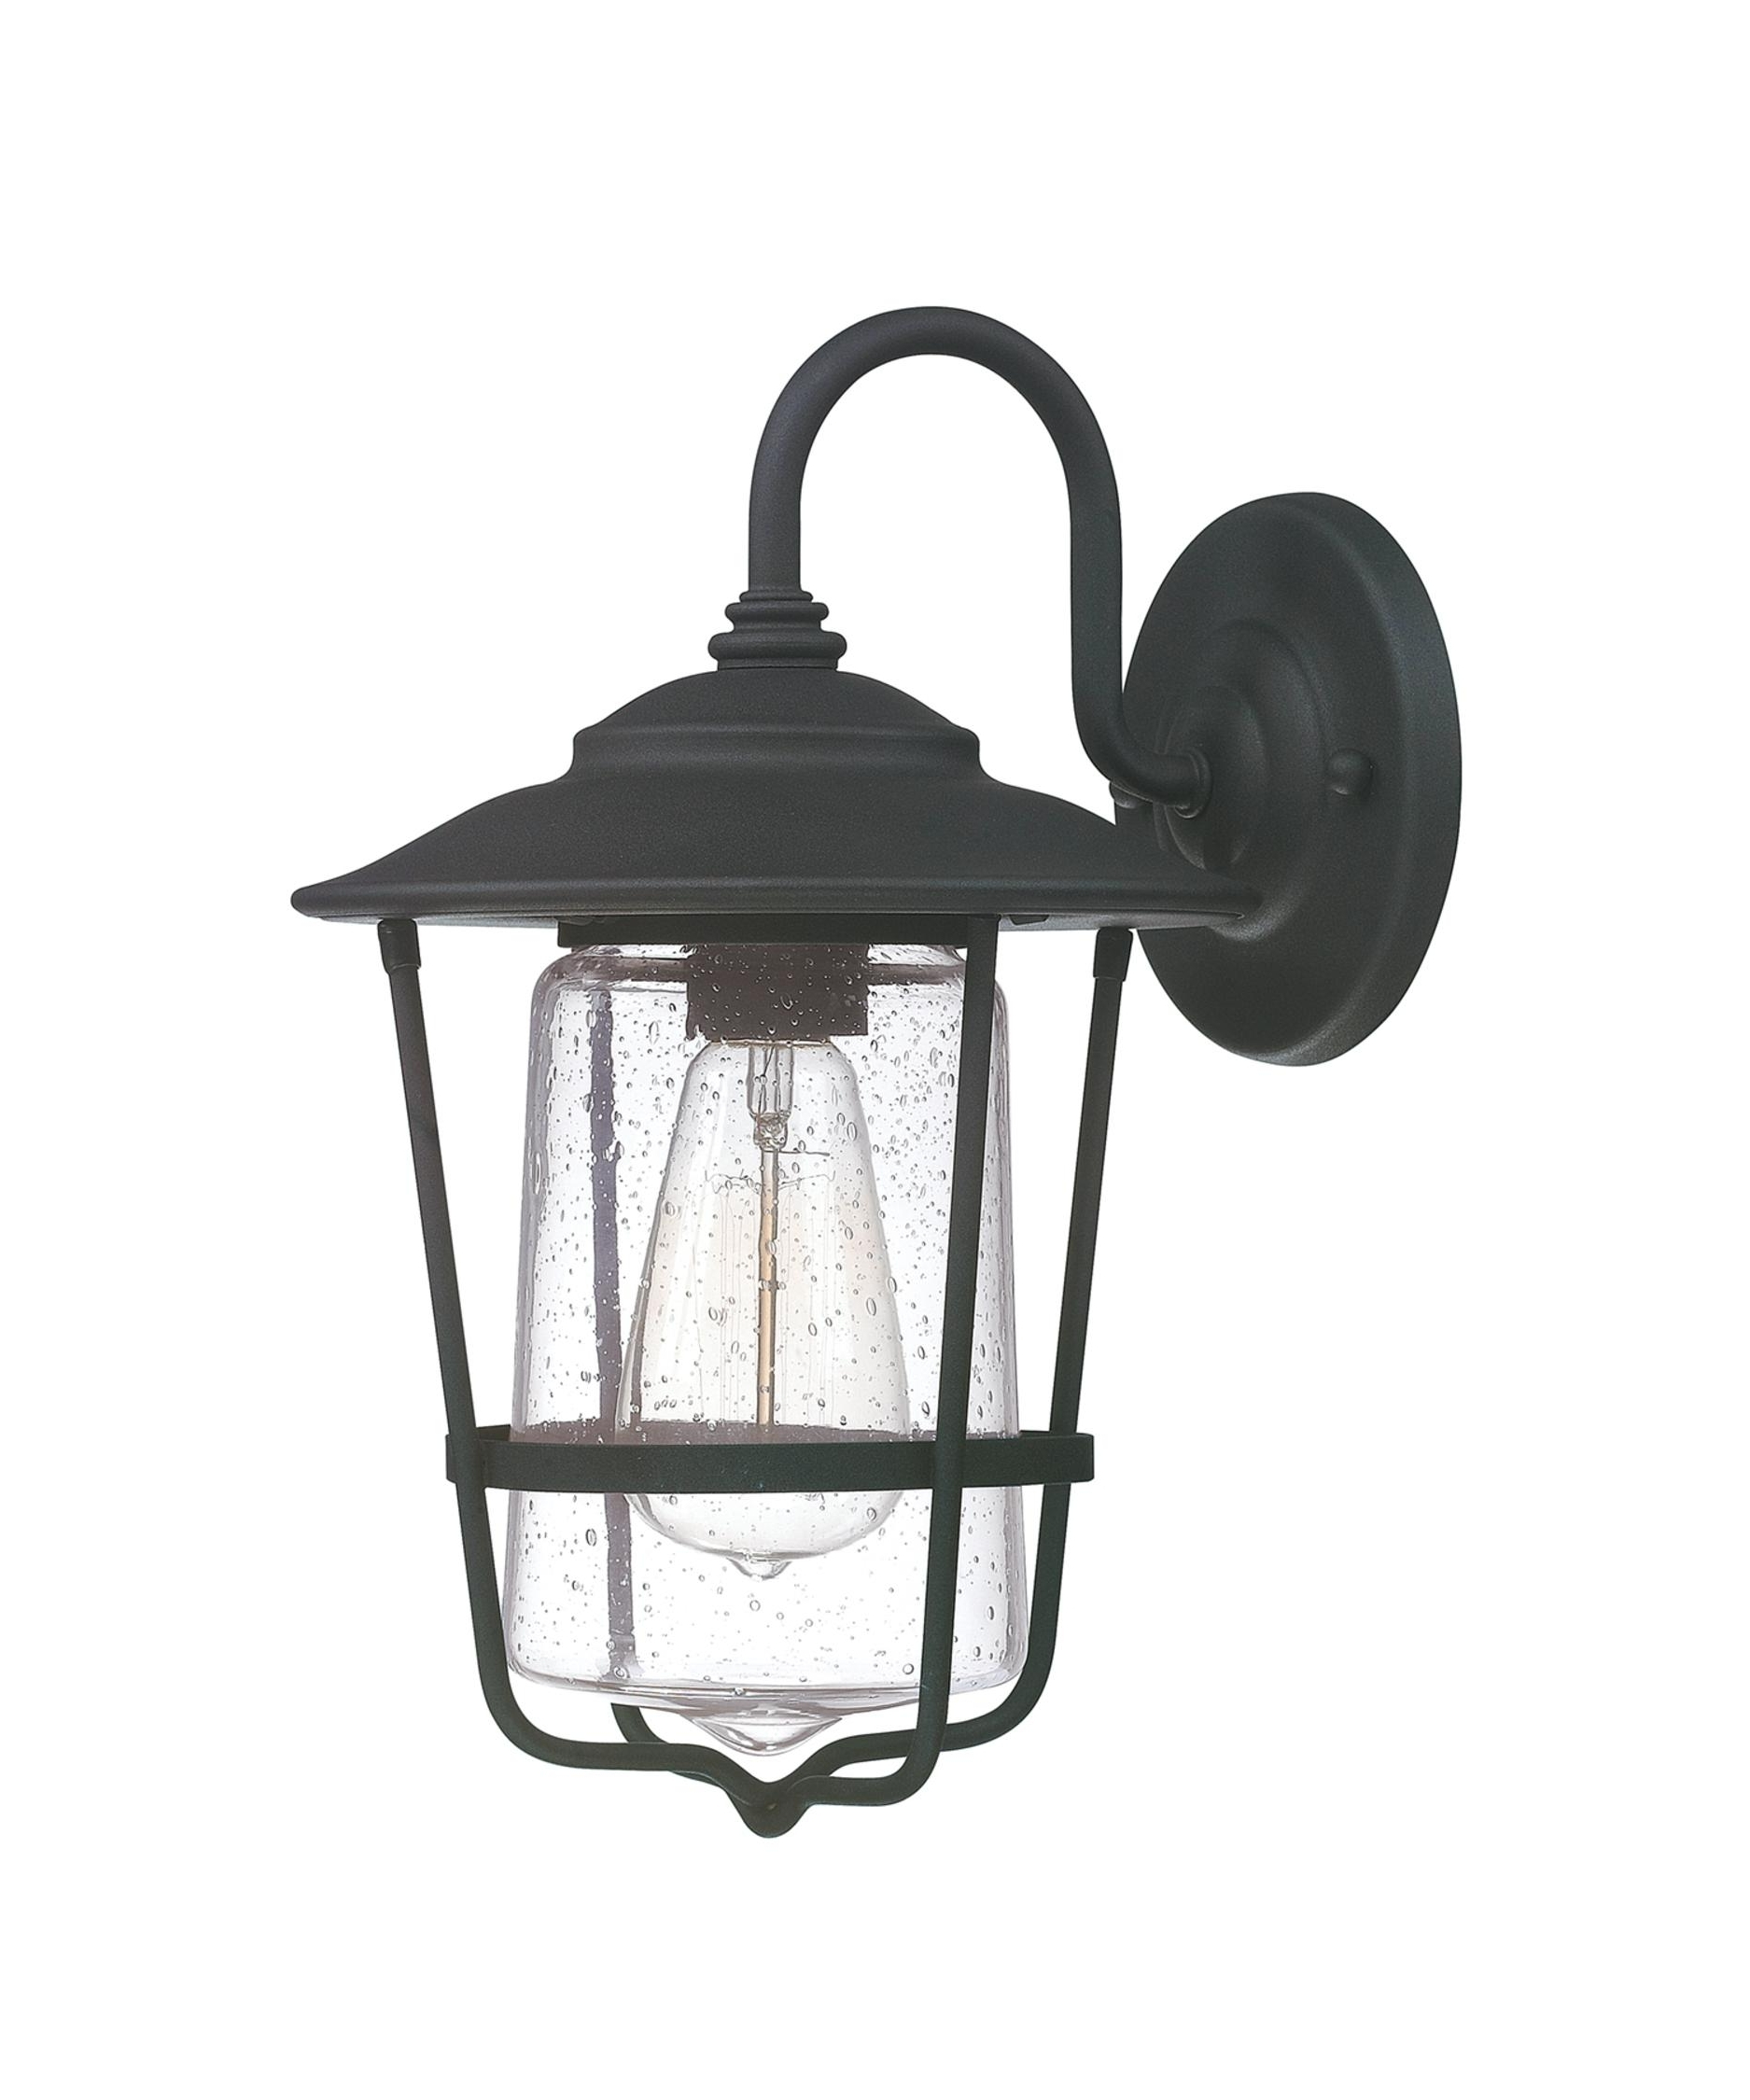 2019 Capital Lighting 9601 Creekside 8 Inch Wide 1 Light Outdoor Wall Intended For Outdoor Wall Lighting With Seeded Glass (Gallery 17 of 20)